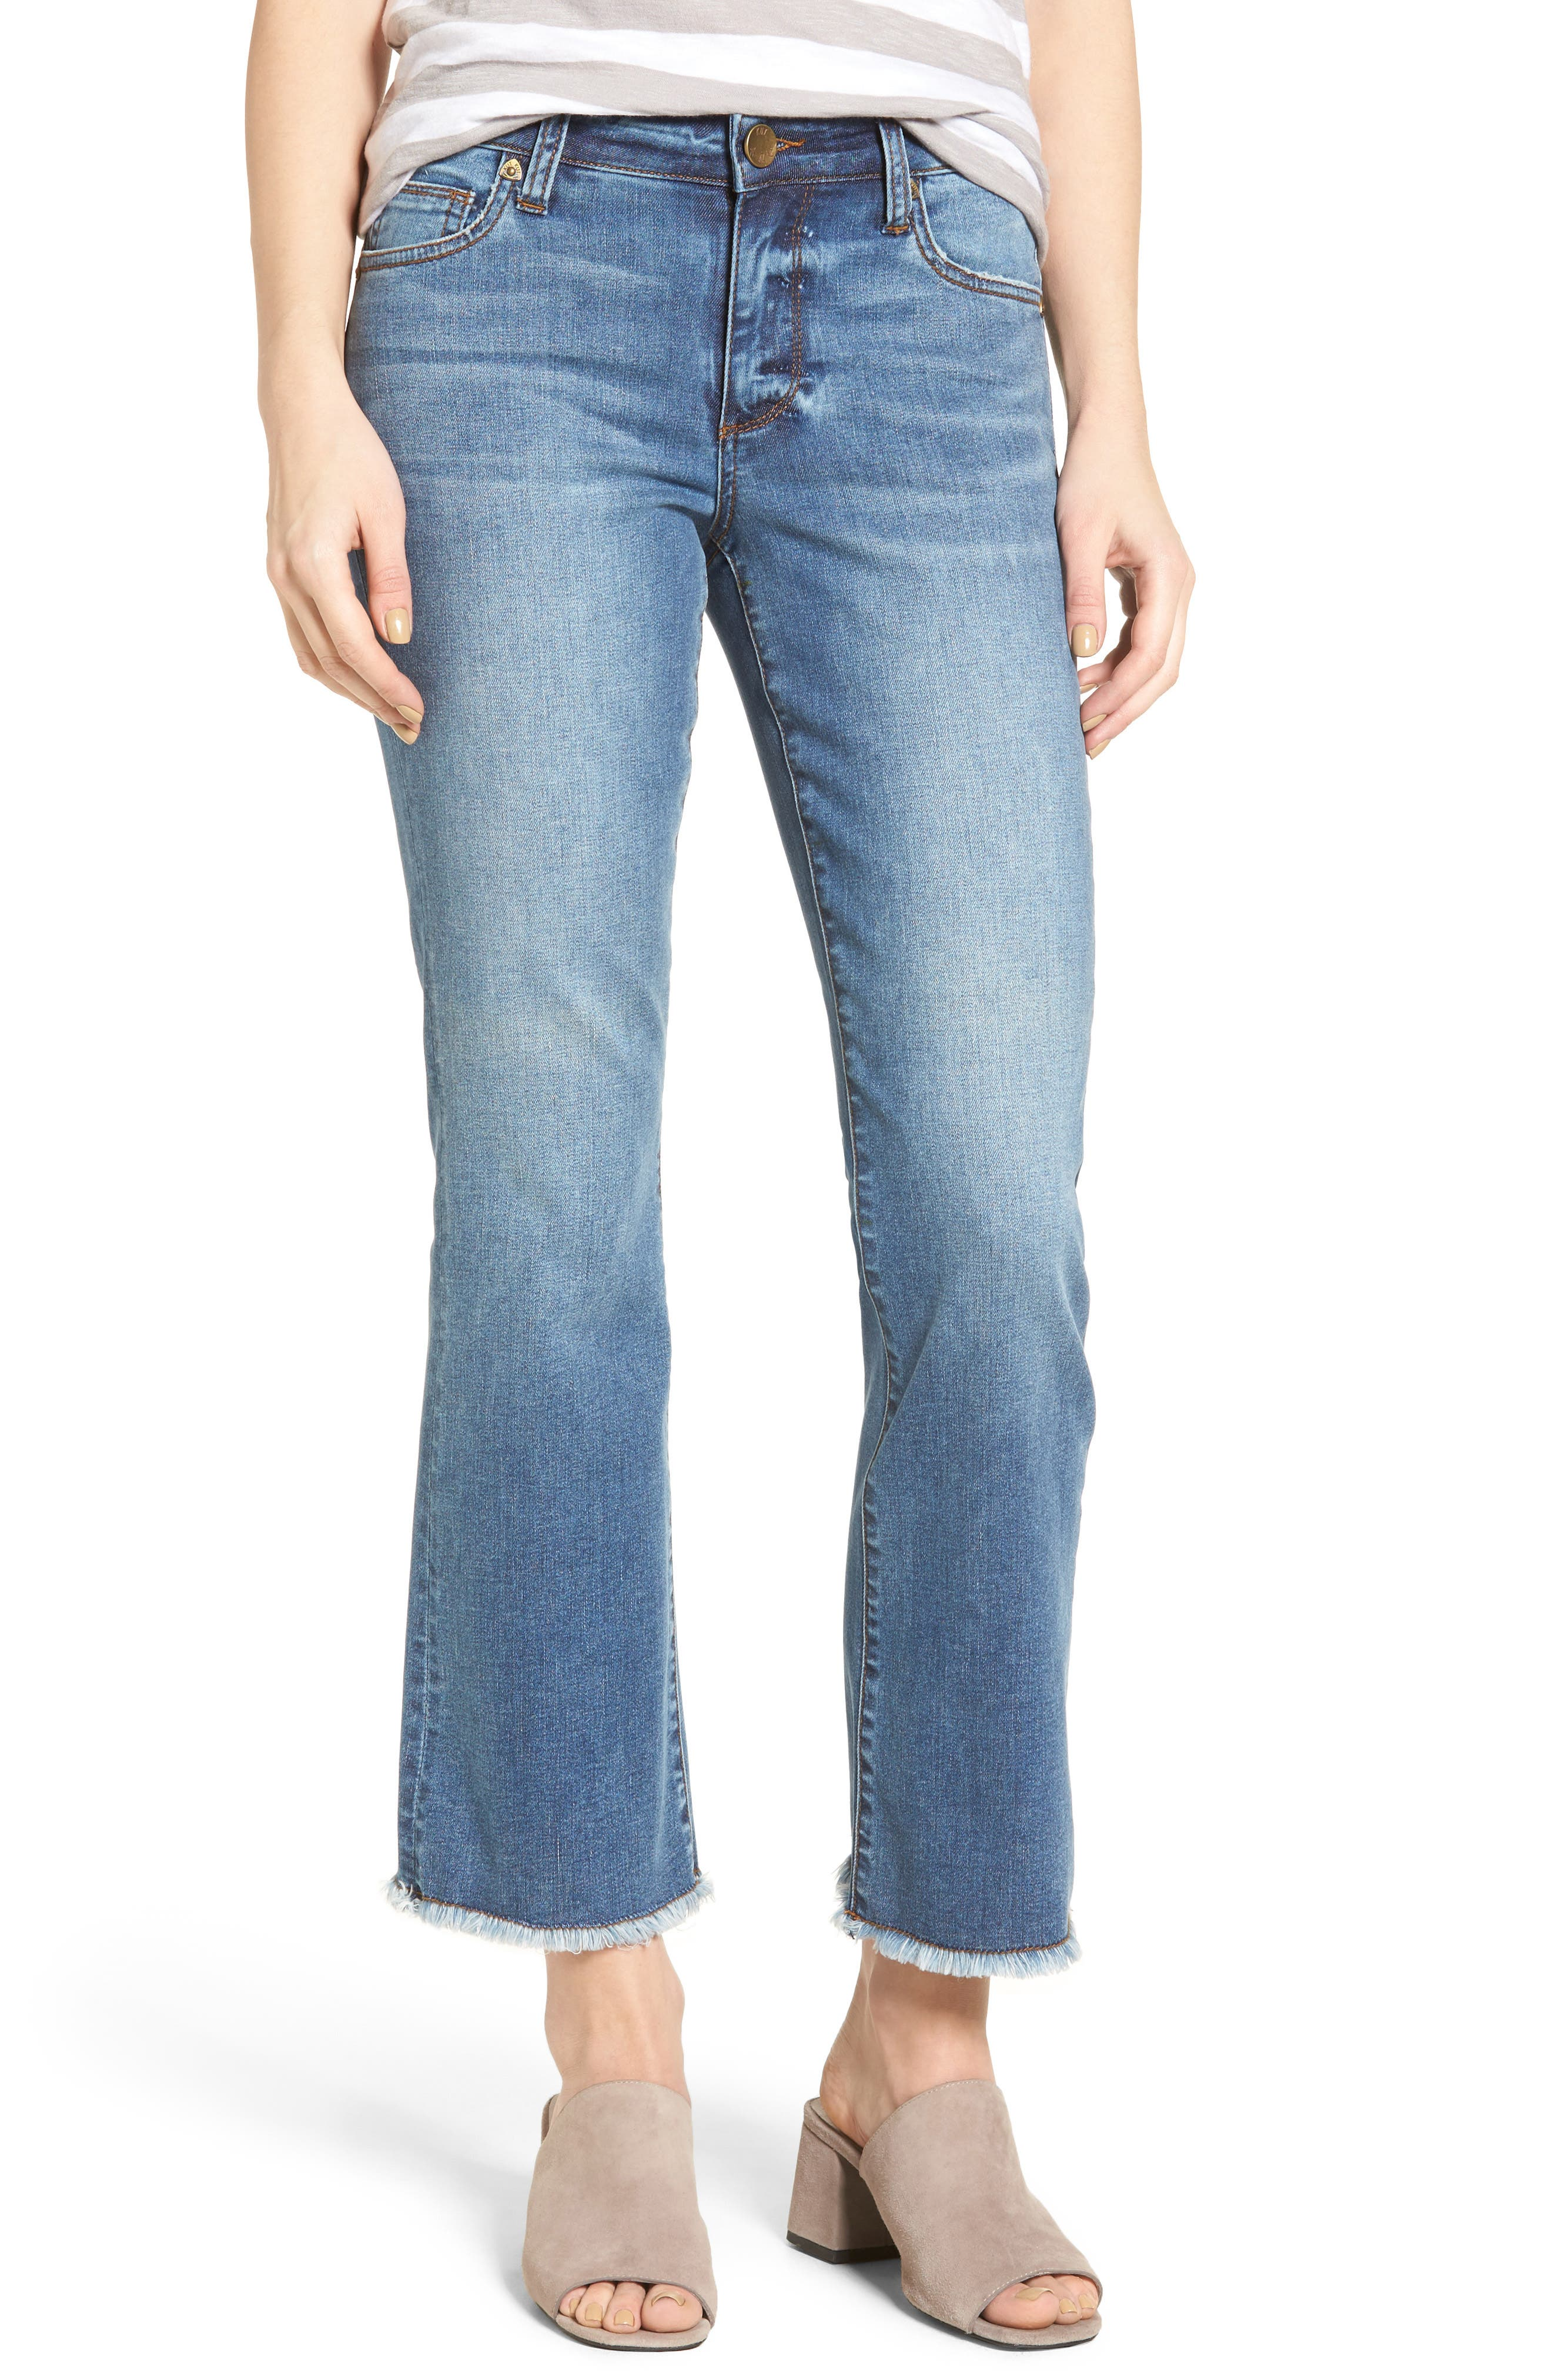 KUT from the Kloth Crop Flare Jeans (Preference)